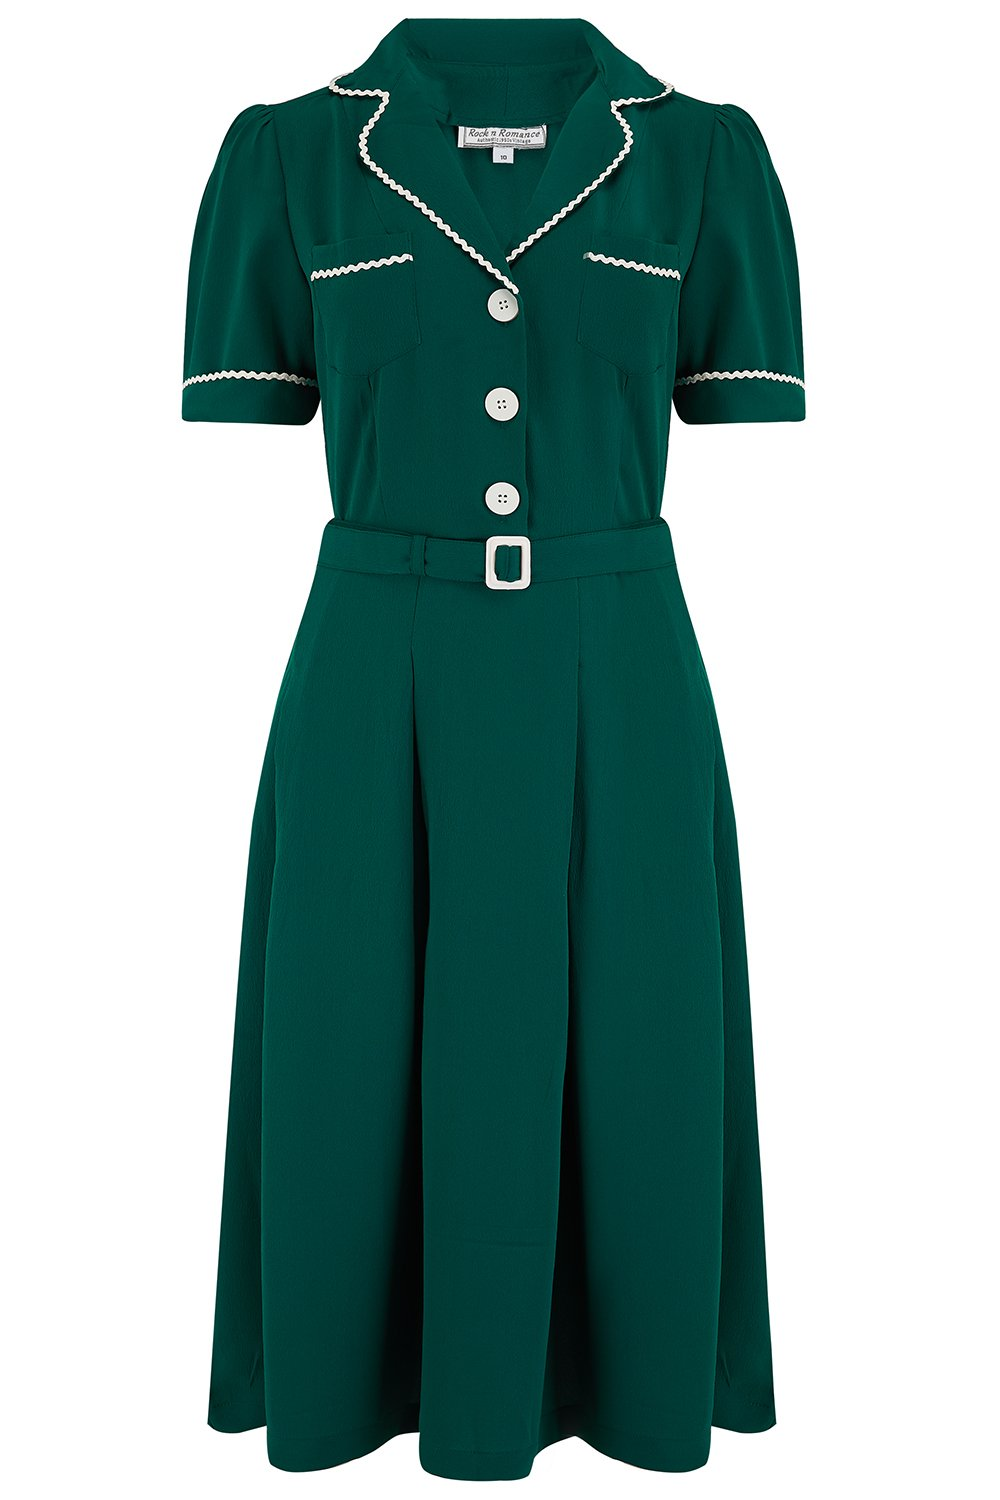 "The ""Kitty"" Shirtwaister Dress in Green with Contrast Ric-Rac, True Late 40s Early 1950s Vintage Style - RocknRomance True 1940s & 1950s Vintage Style"